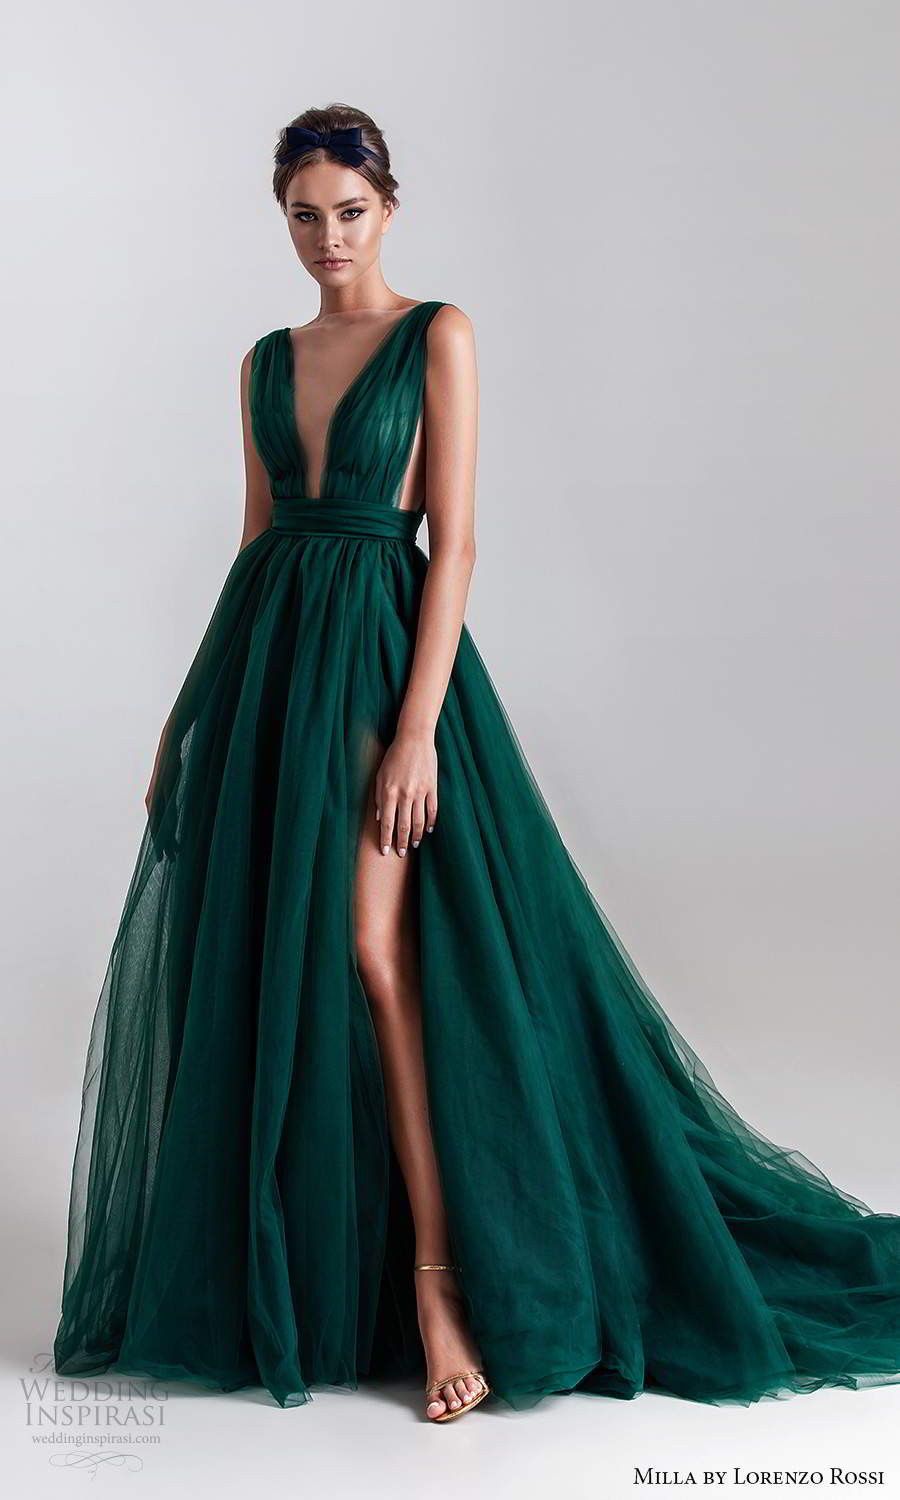 milla by lorenzo rossi 2020 rtw sleeveless  straps plunging neckline ruched bodice a line ball gown wedding dress slit skirt chapel train dark green color (12) mv